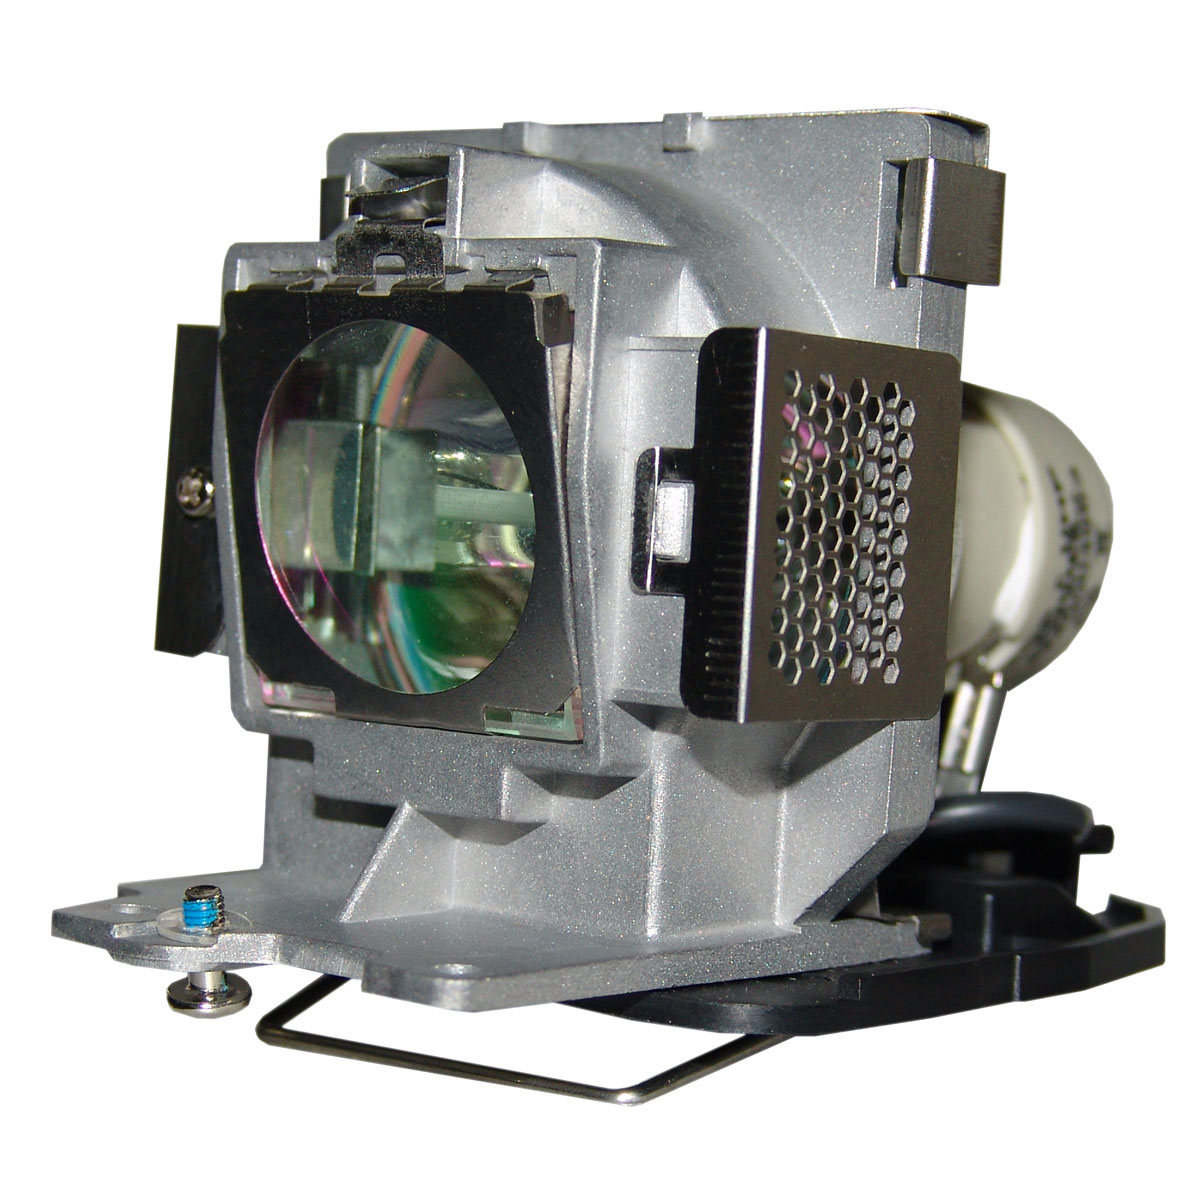 Original Philips Projector Lamp Replacement with Housing for BenQ MP24 - image 5 of 5